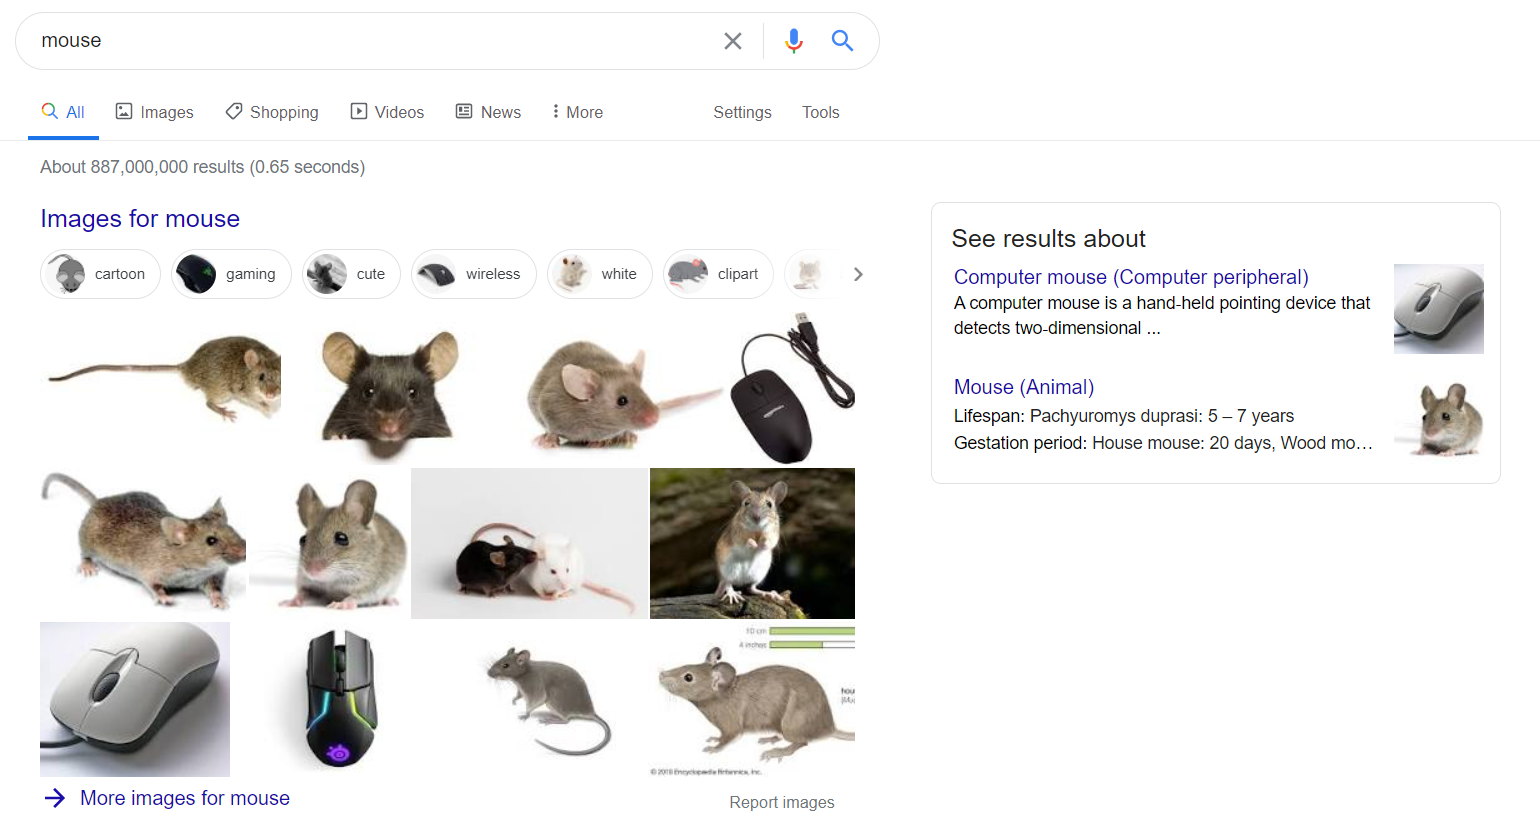 mouse vs computer mouse - example